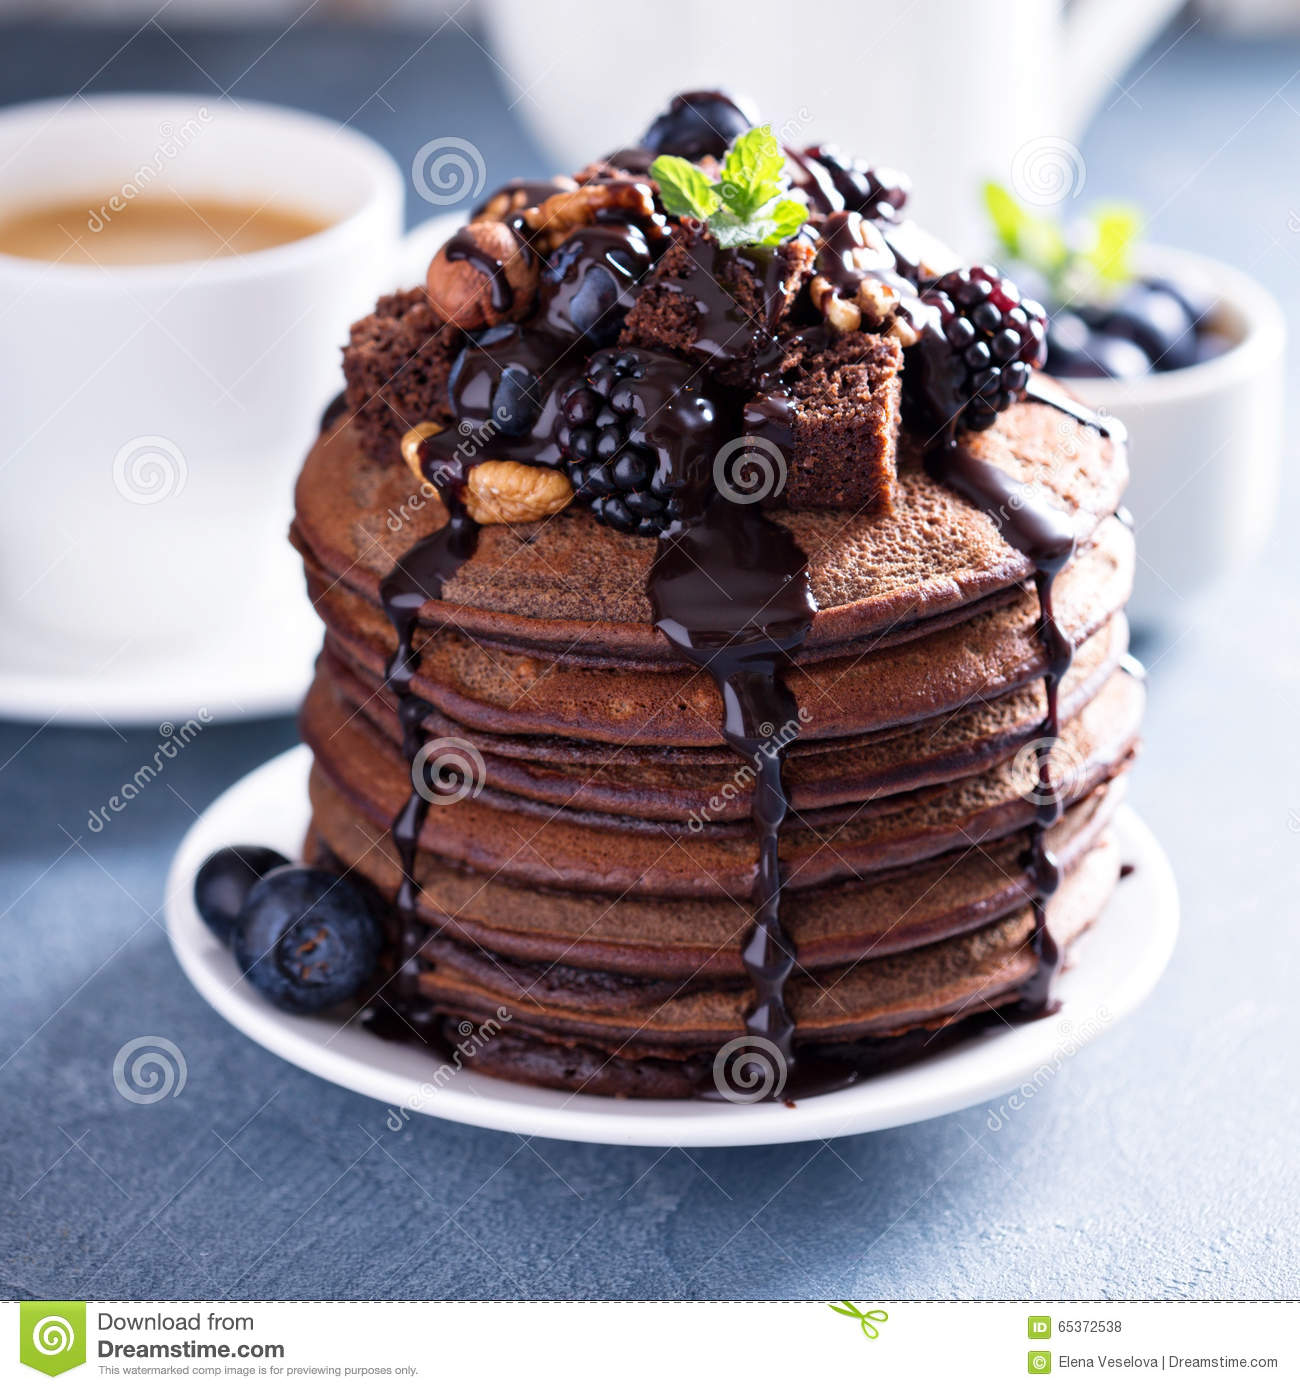 Stack Of Chocolate Pancakes With Toppings Stock Photo - Image ...